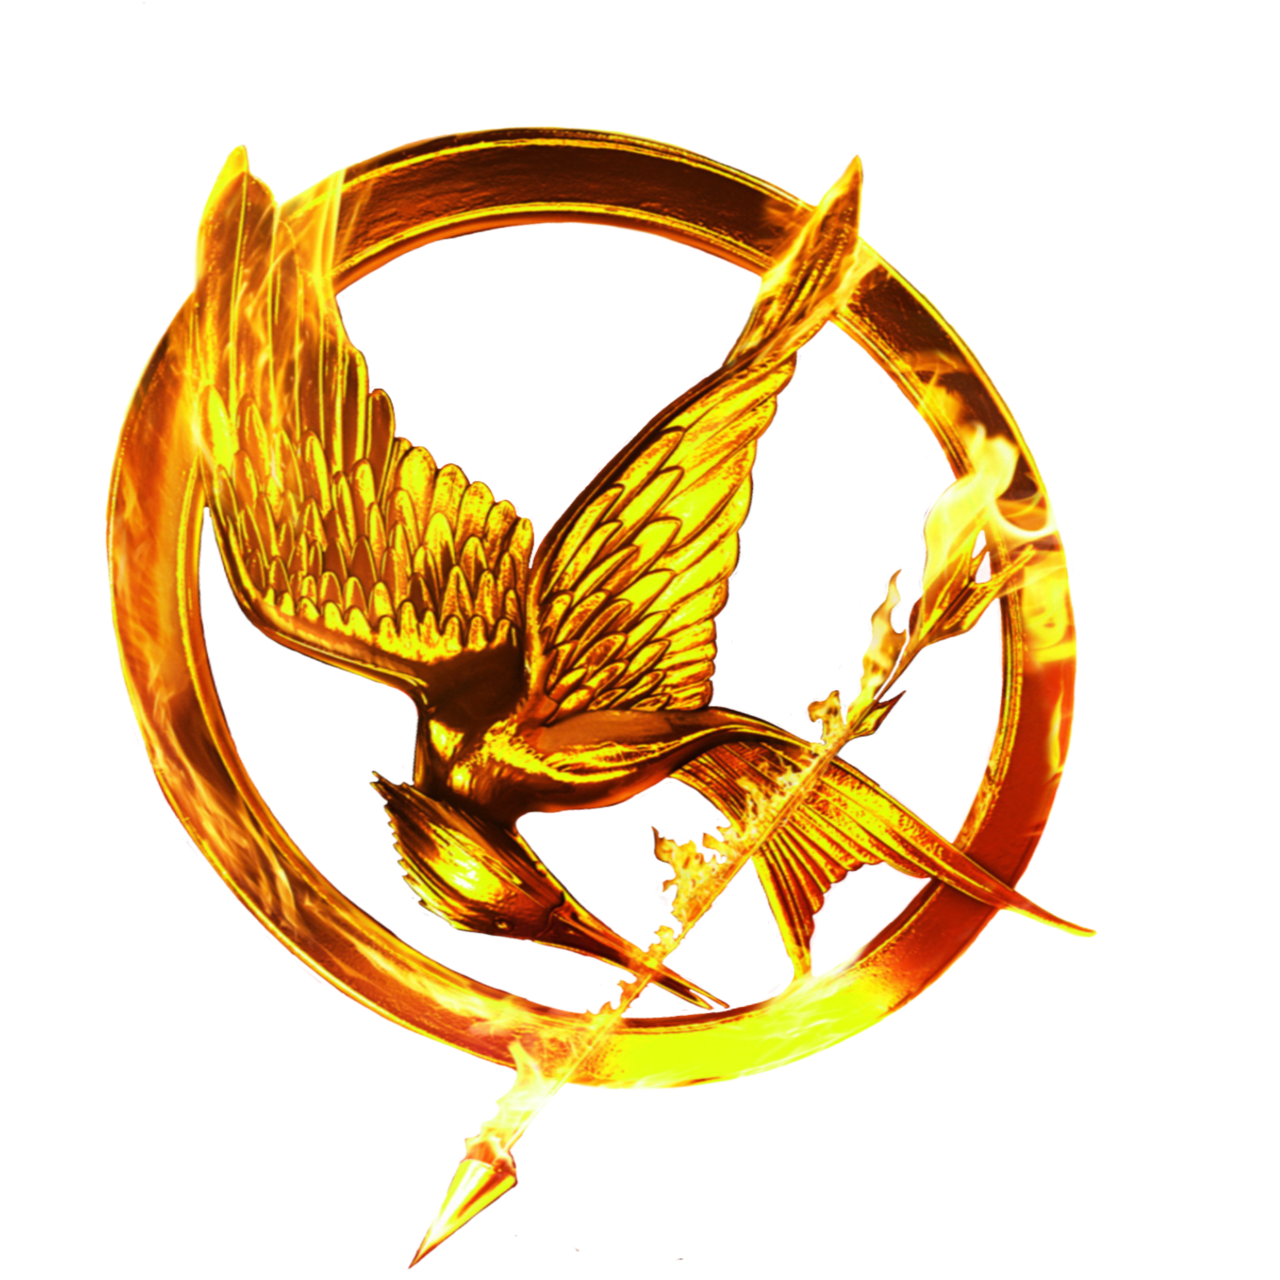 The Hunger Games Picture PNG Image-The Hunger Games Picture PNG Image-13